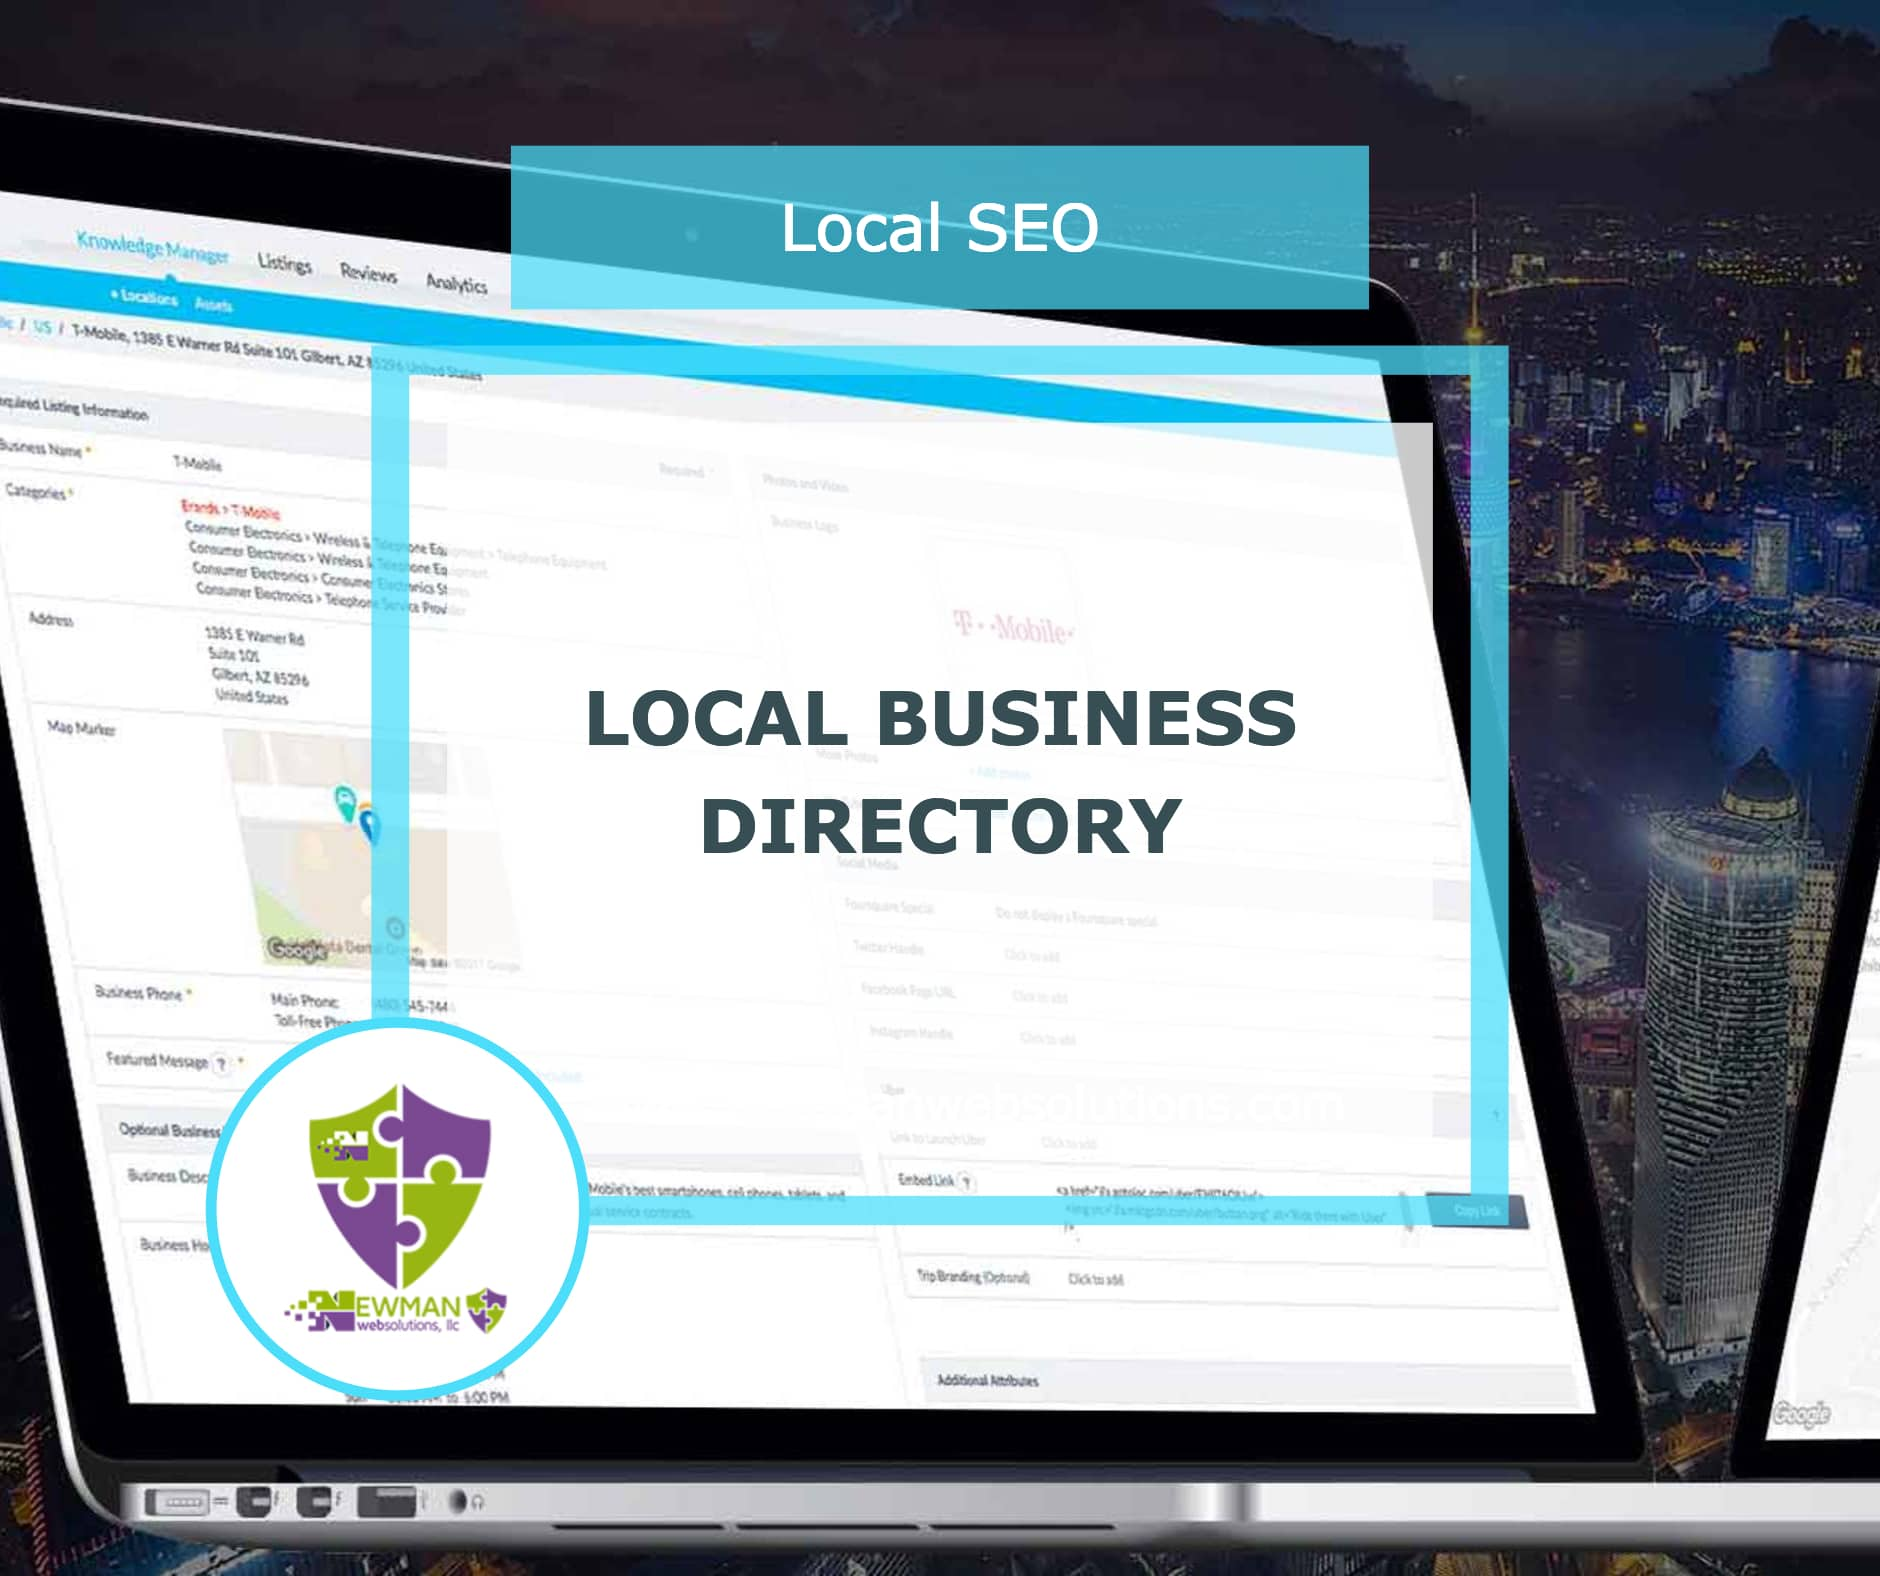 LOCAL BUSINESS DIRECTORY - Local SEO